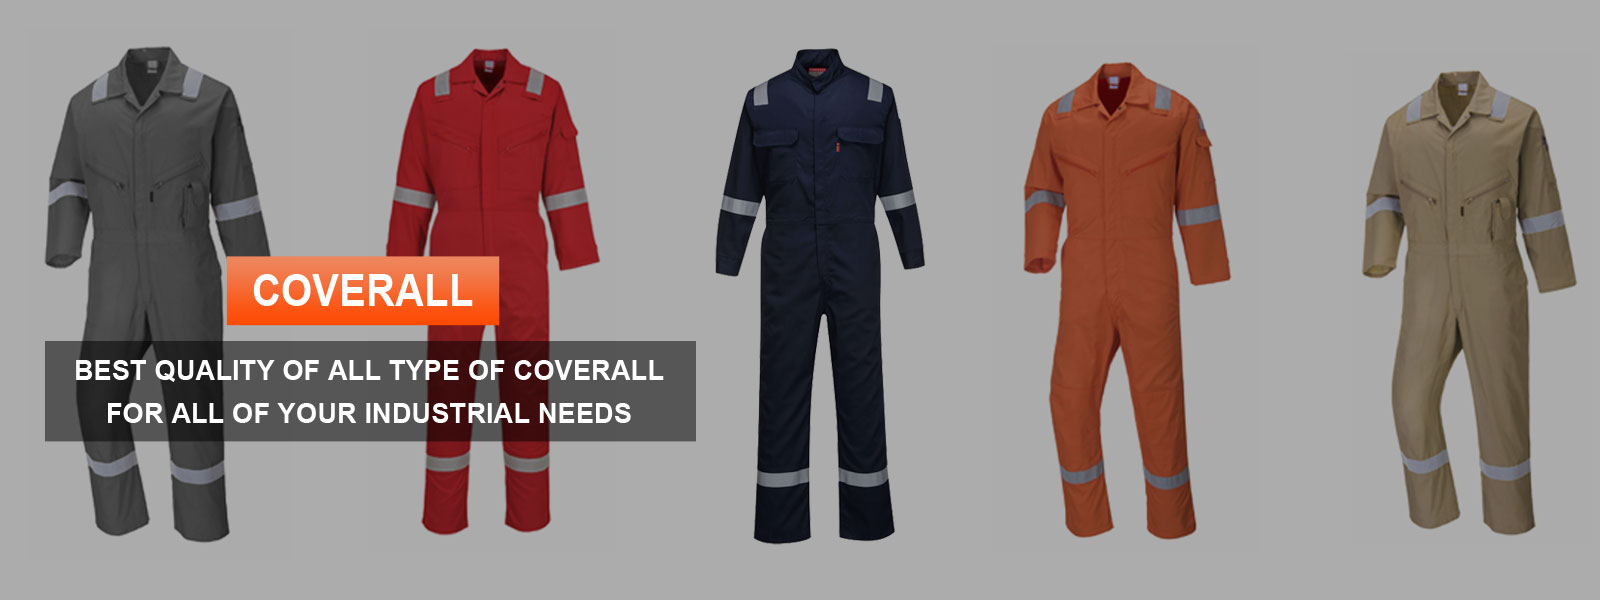 Coverall Manufacturers in Saudi arabia